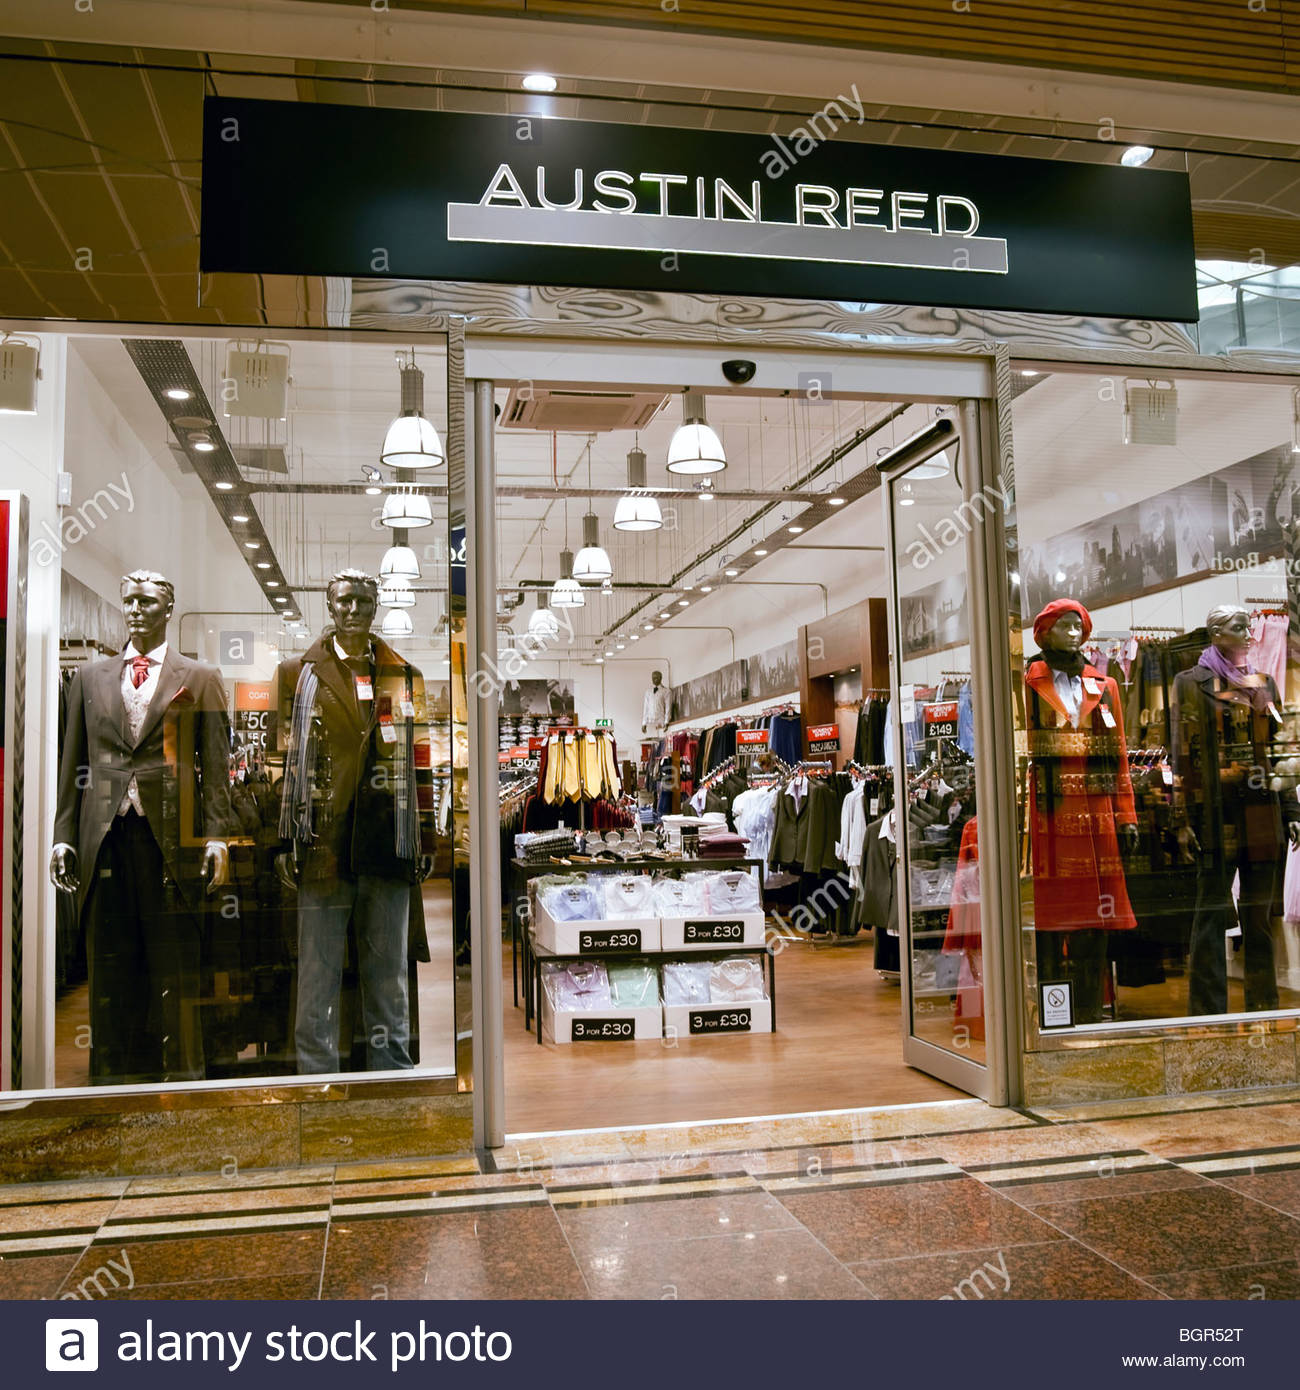 austin reed shop at gloucester quays designer outlet uk. Black Bedroom Furniture Sets. Home Design Ideas